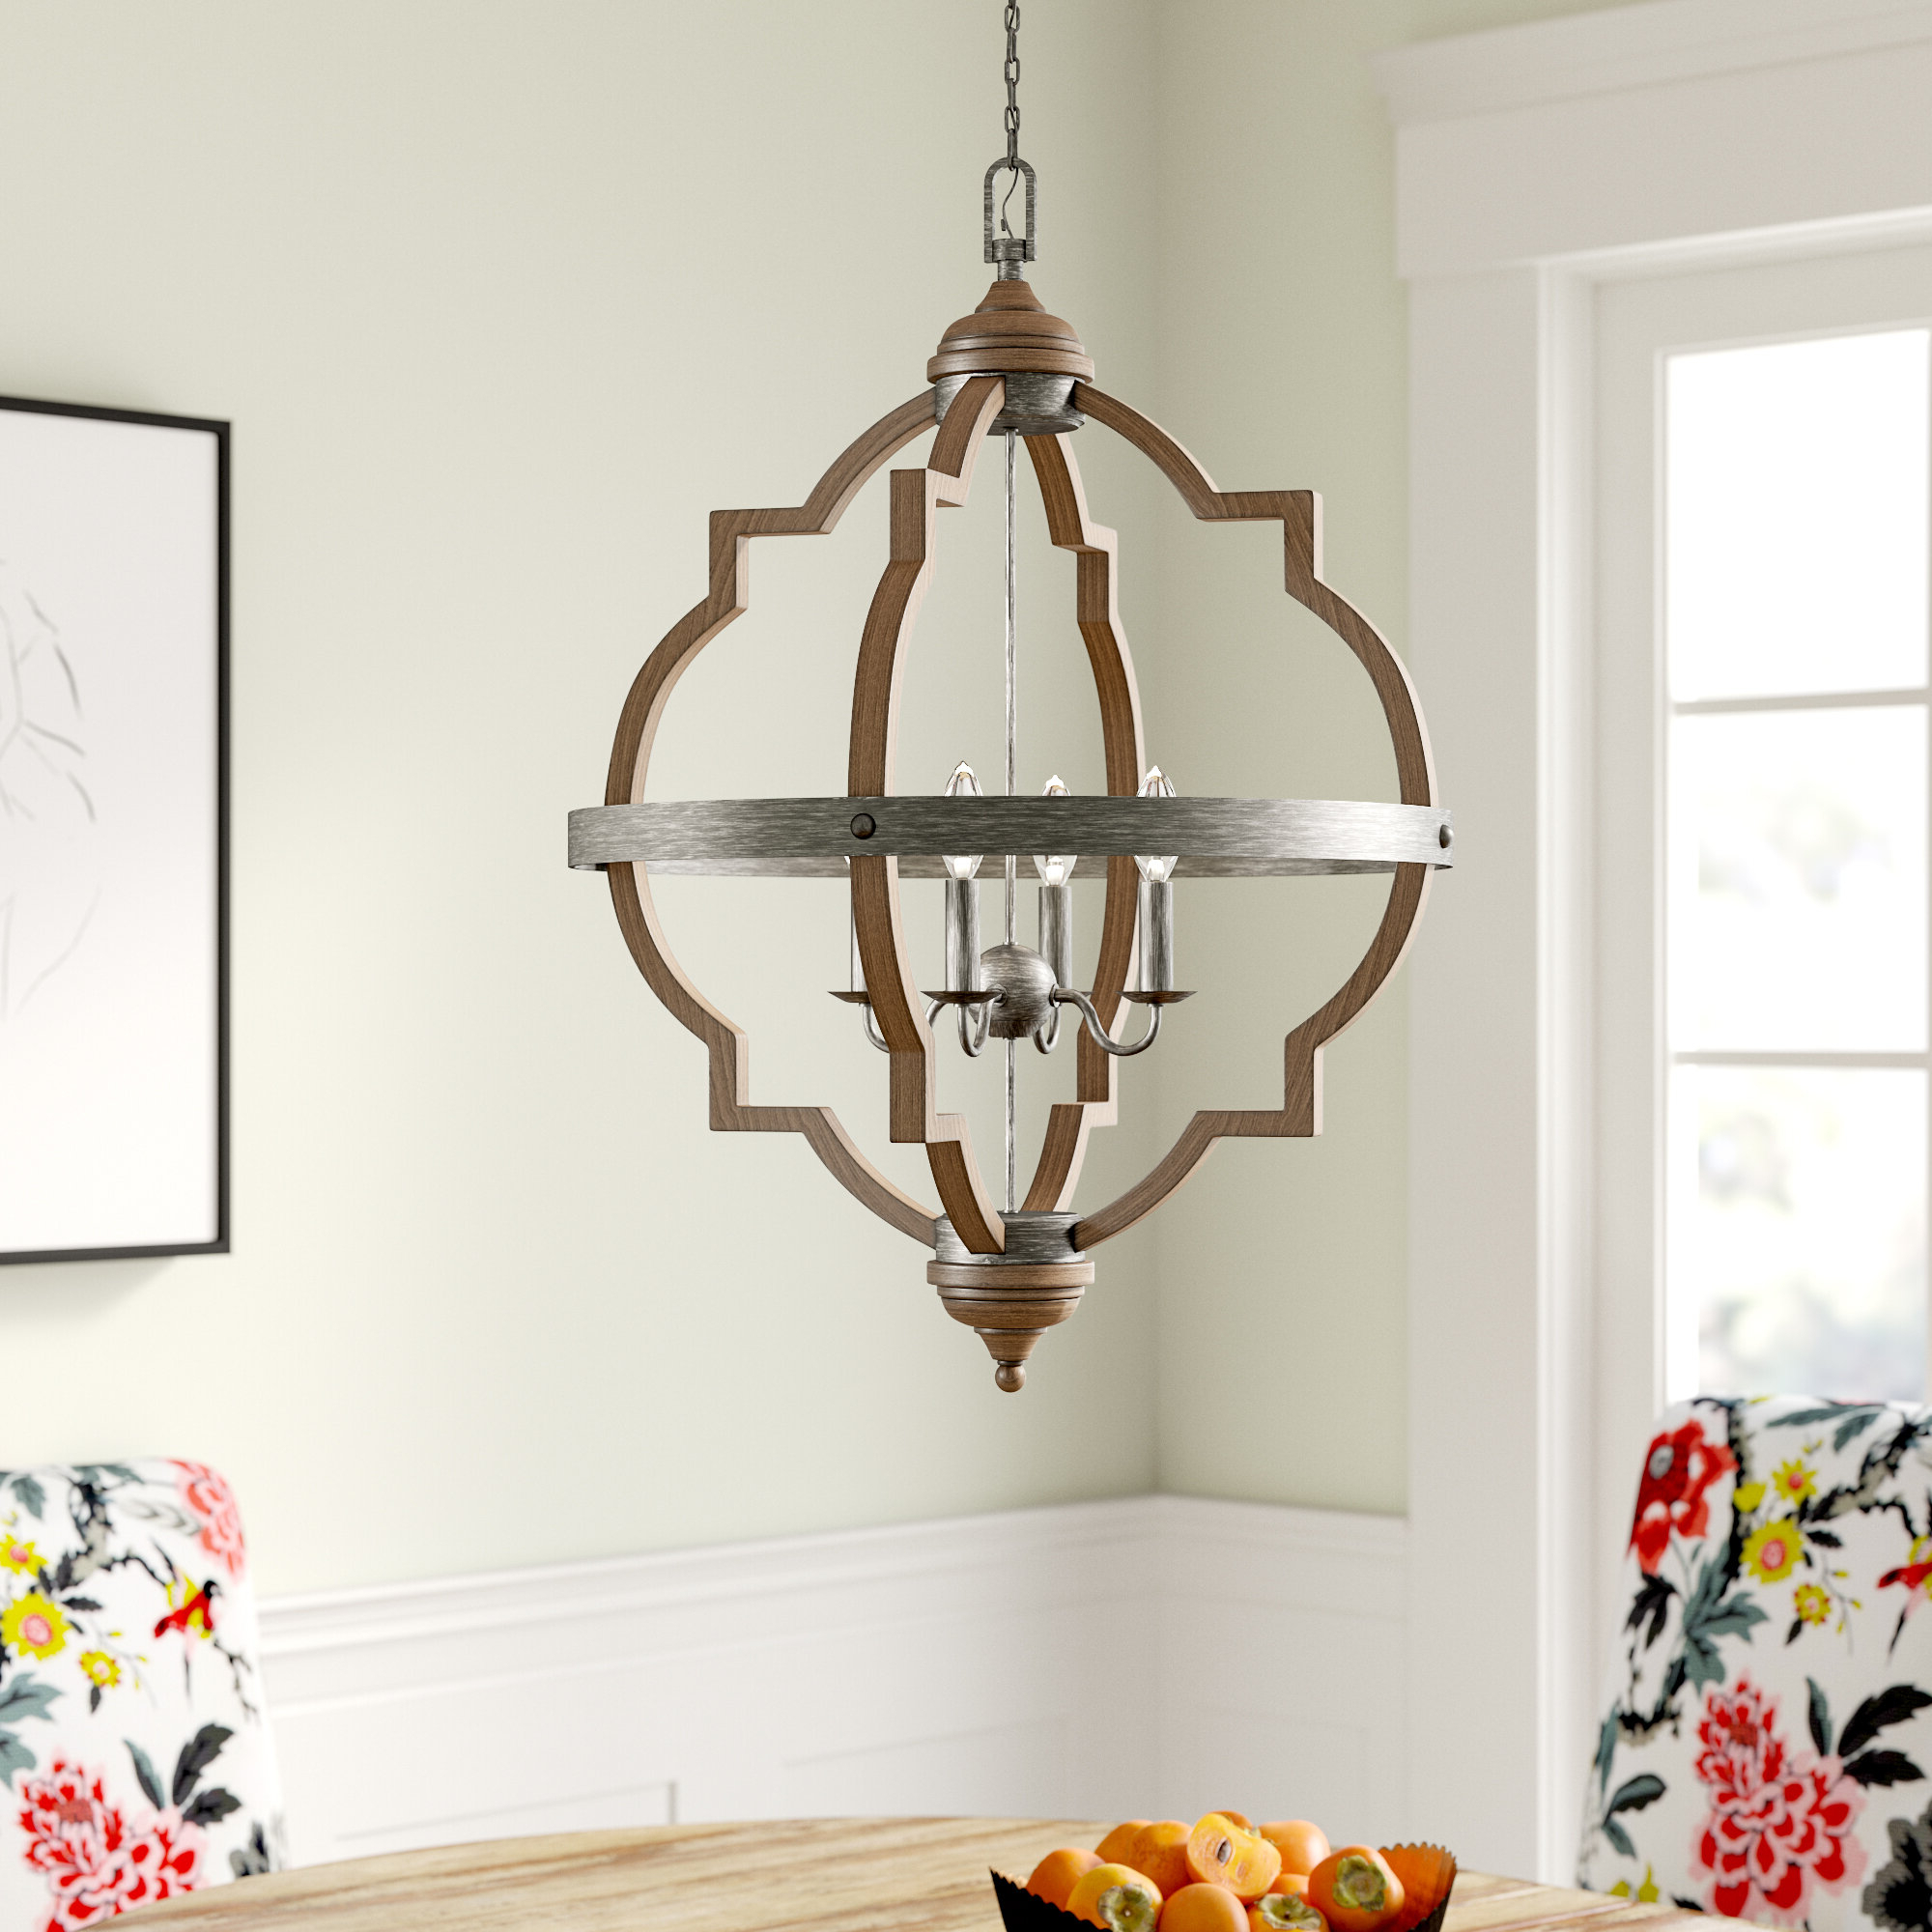 Bennington 4 Light Candle Style Chandelier Within Popular Dailey 4 Light Drum Chandeliers (Gallery 8 of 20)